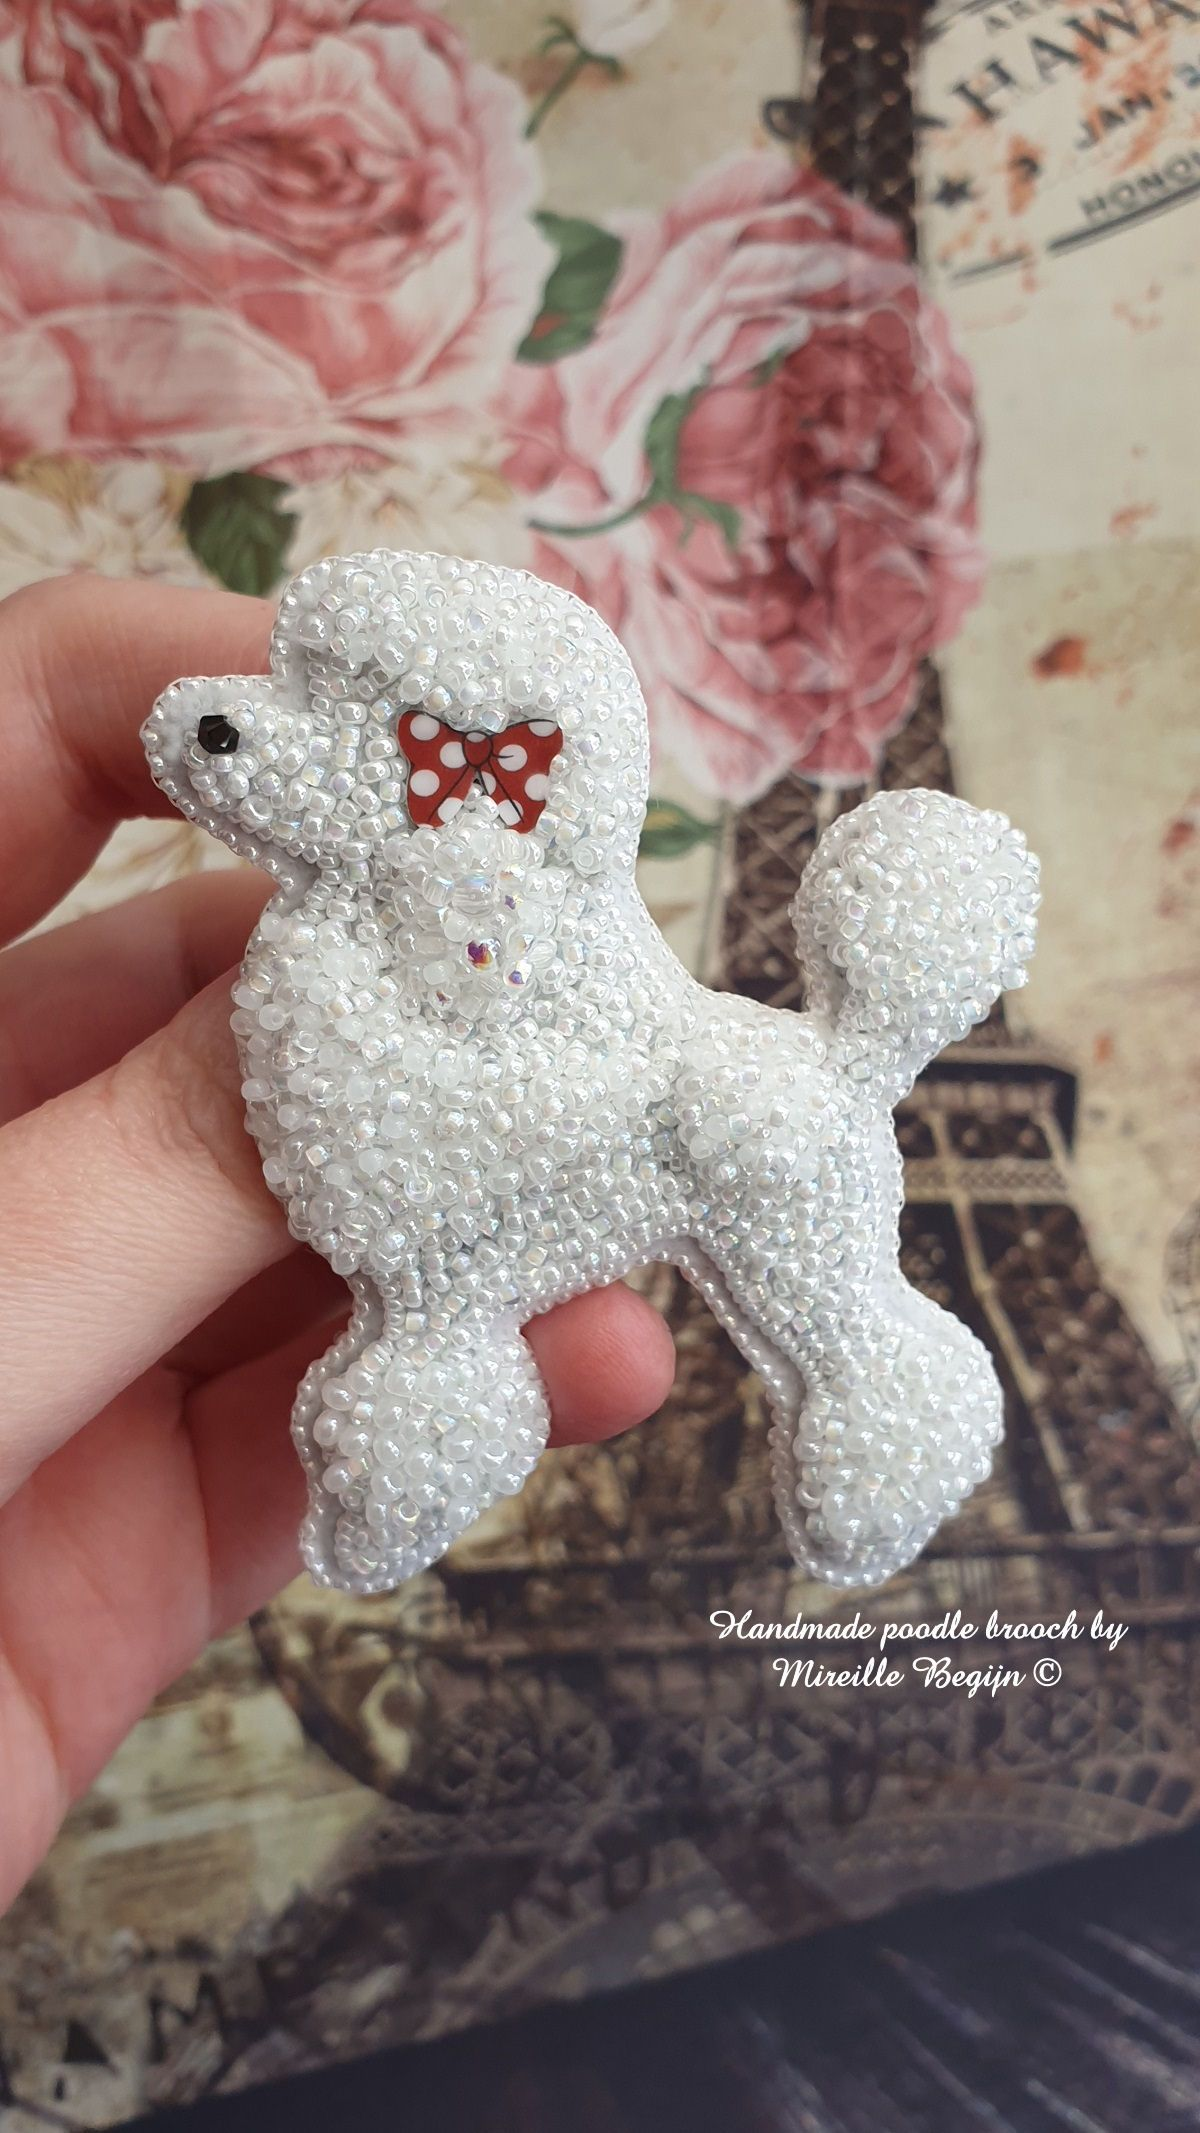 Handmade Poodle brooch by Mireille Begijn (Belgium). 🐩 #dog #poodlelove #unicorn #bearartist #berenmaakster #sewing #fairy #faries #bear #beer #artist #kunstenares #necklace #earrings #beaded #beading #embroidery #artist #kunstenares #beads #brooch #broches #pearls #Swarovski #pigg #unicorn #bearartist #berenmaakster #sewing #fairy #faries #bear #beer #artist #kunstenares #necklace #earrings #beaded #beading #embroidery #artist #kunstenares #beads #brooch #broches #pearls #Swarovski #pigg